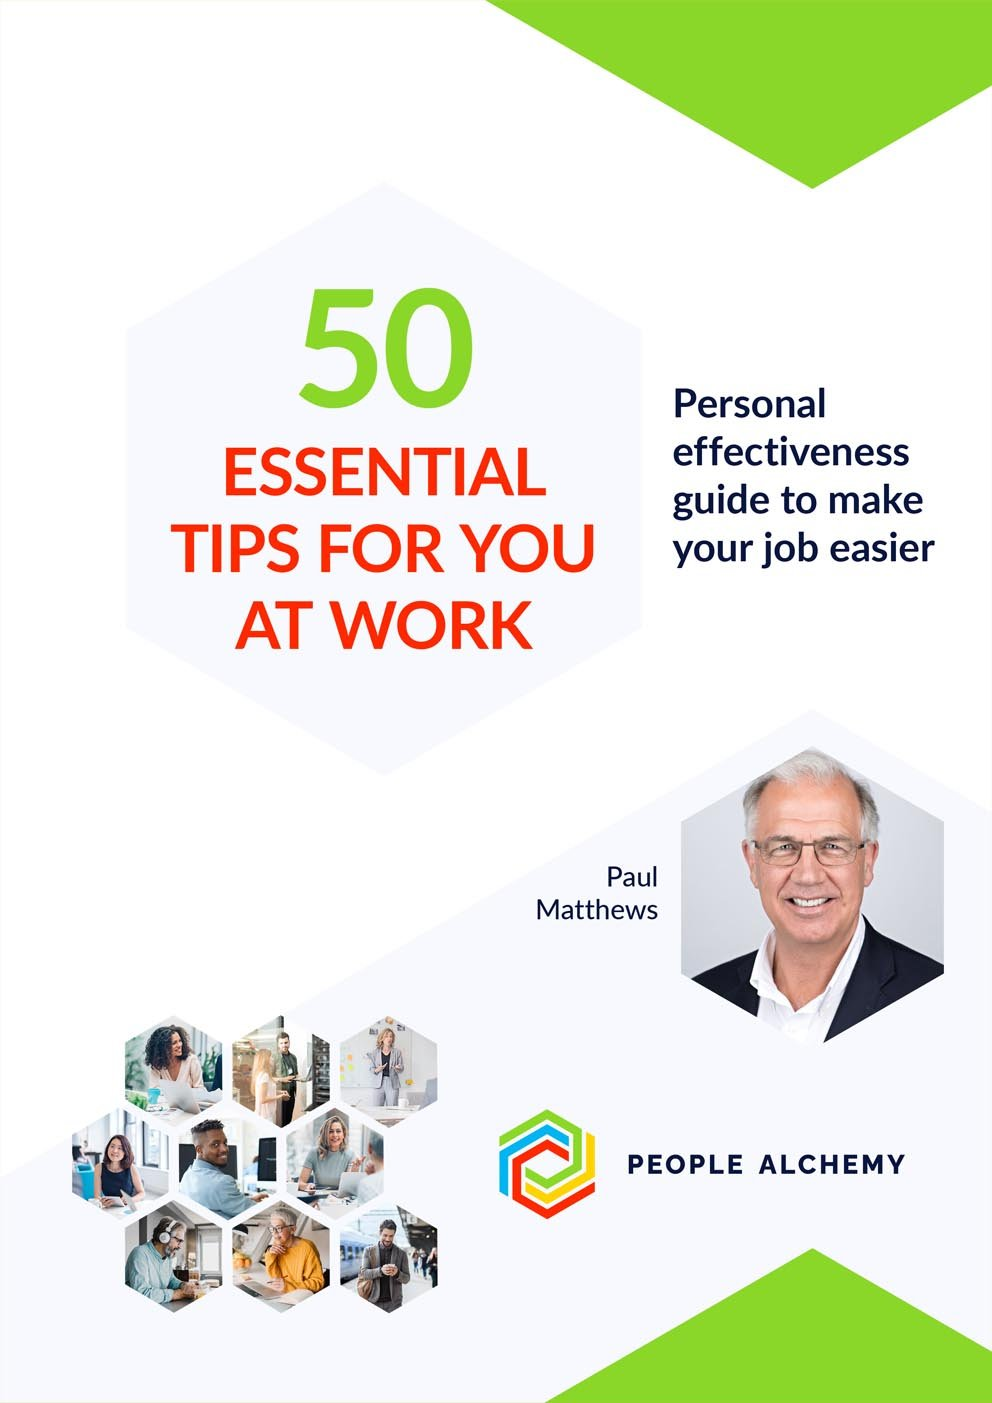 https://peoplealchemy.com/wp-content/uploads/2021/09/PA-Tips-Booklet-2021-covers-HD-2.jpg